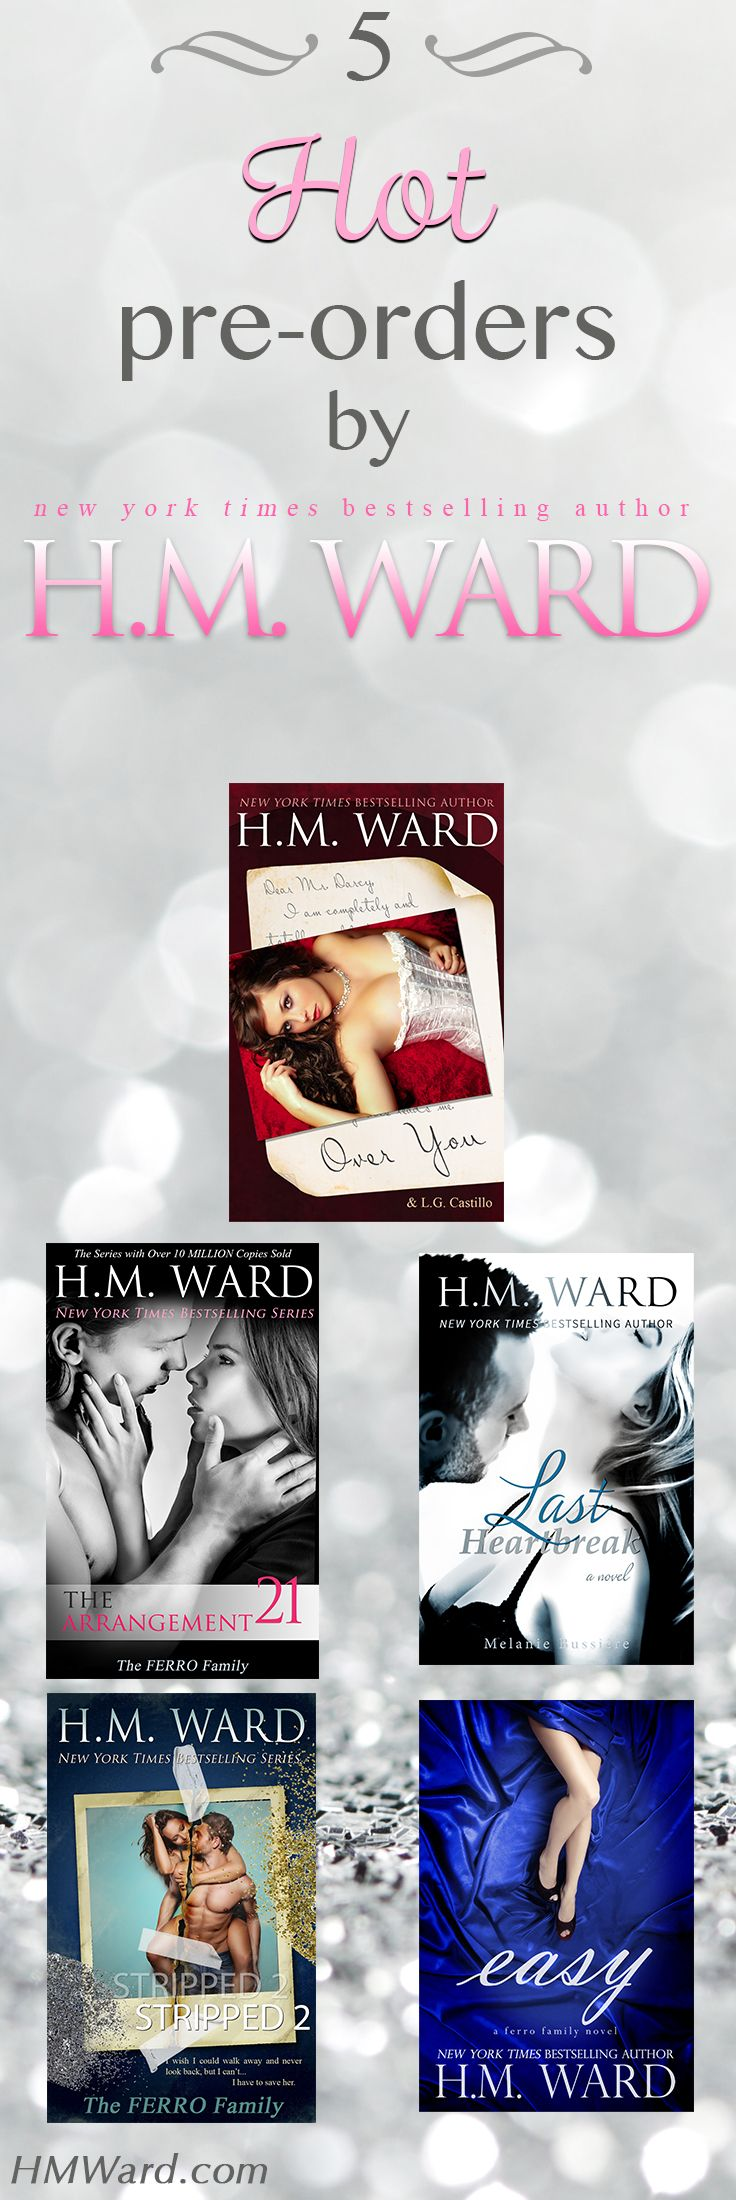 H.M. Ward's Blog | New York Times Bestselling Author